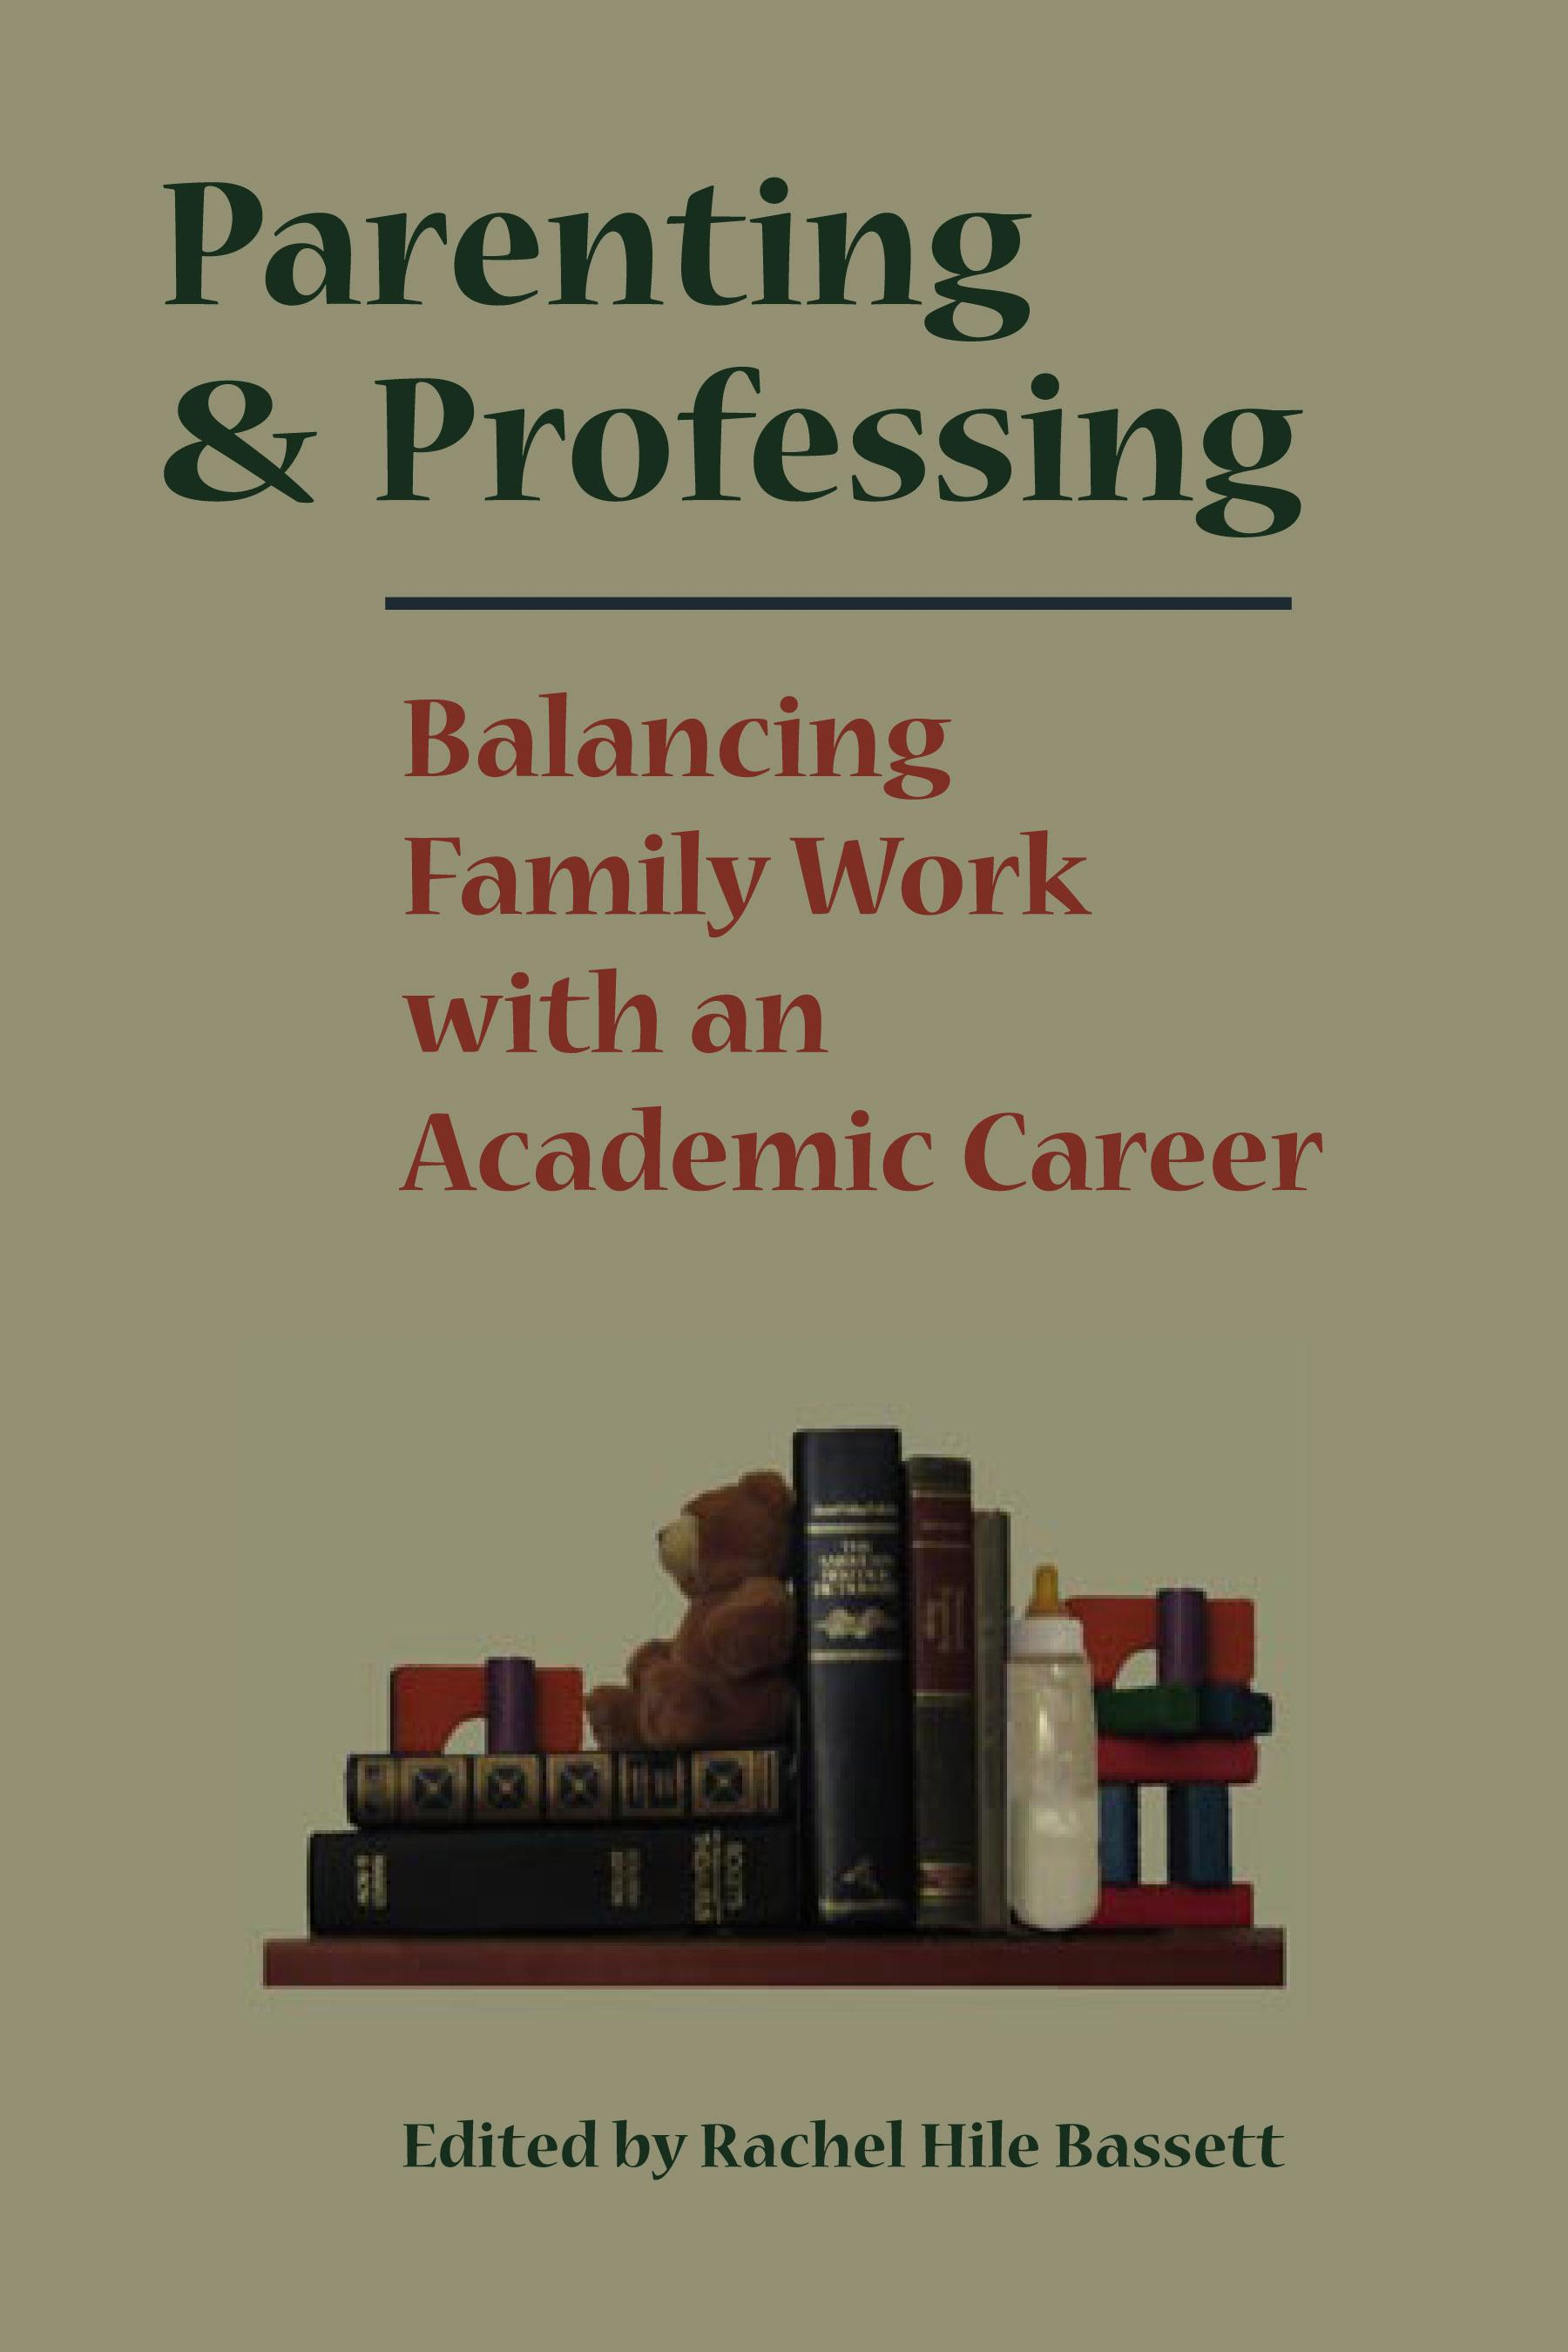 Parenting and Professing: Balancing Family Work with an Academic Career EB9780826591906